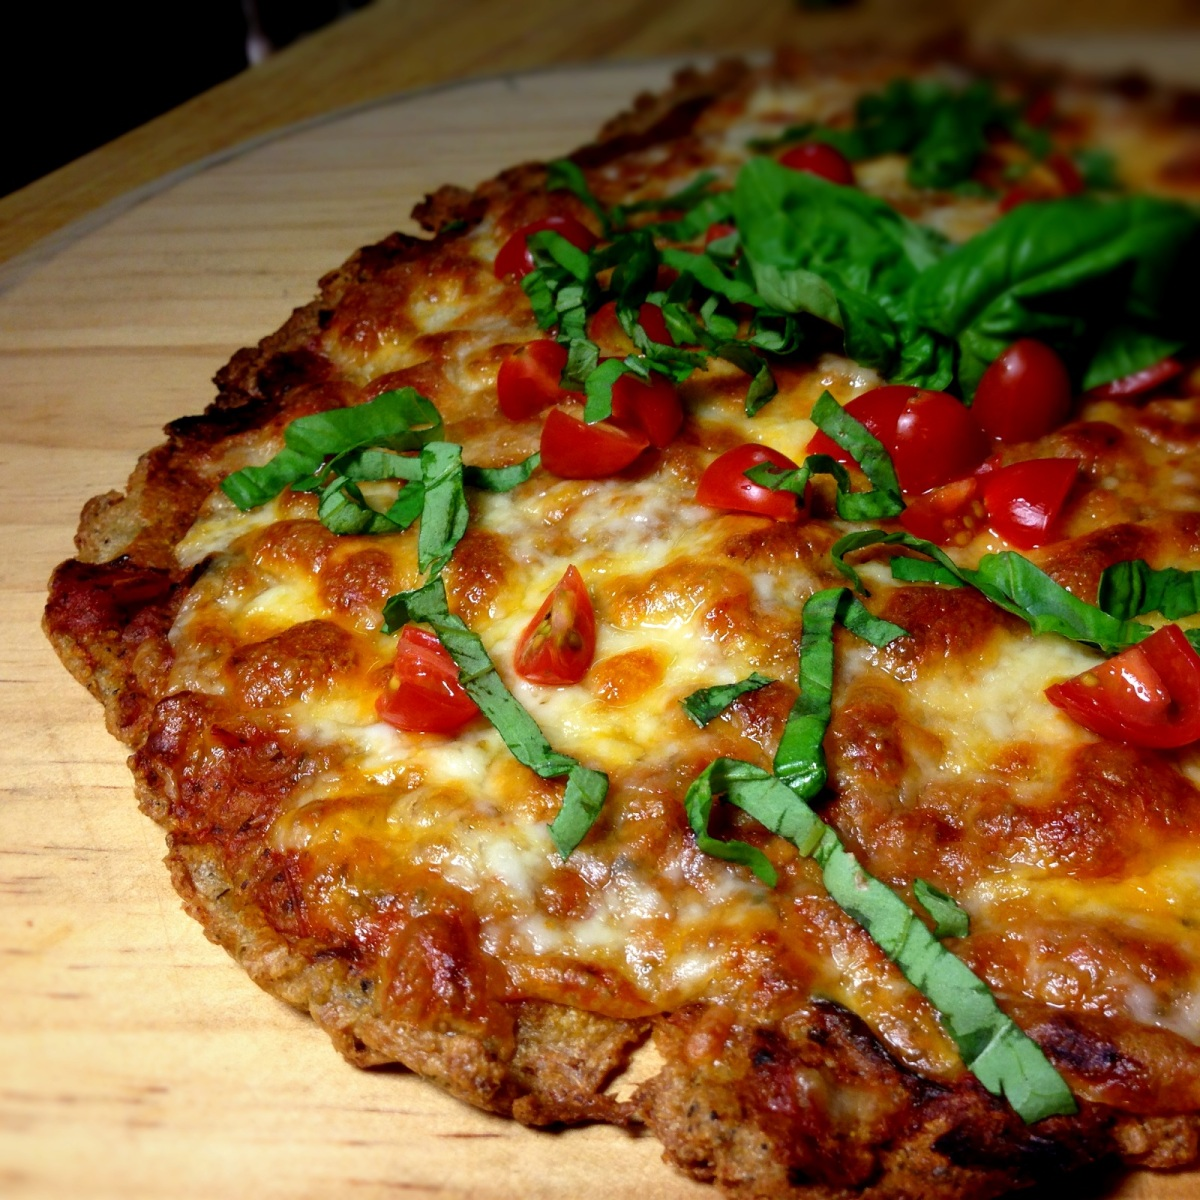 Quick Amp Easy Quinoa Pizza Dough Gluten Free Delightful